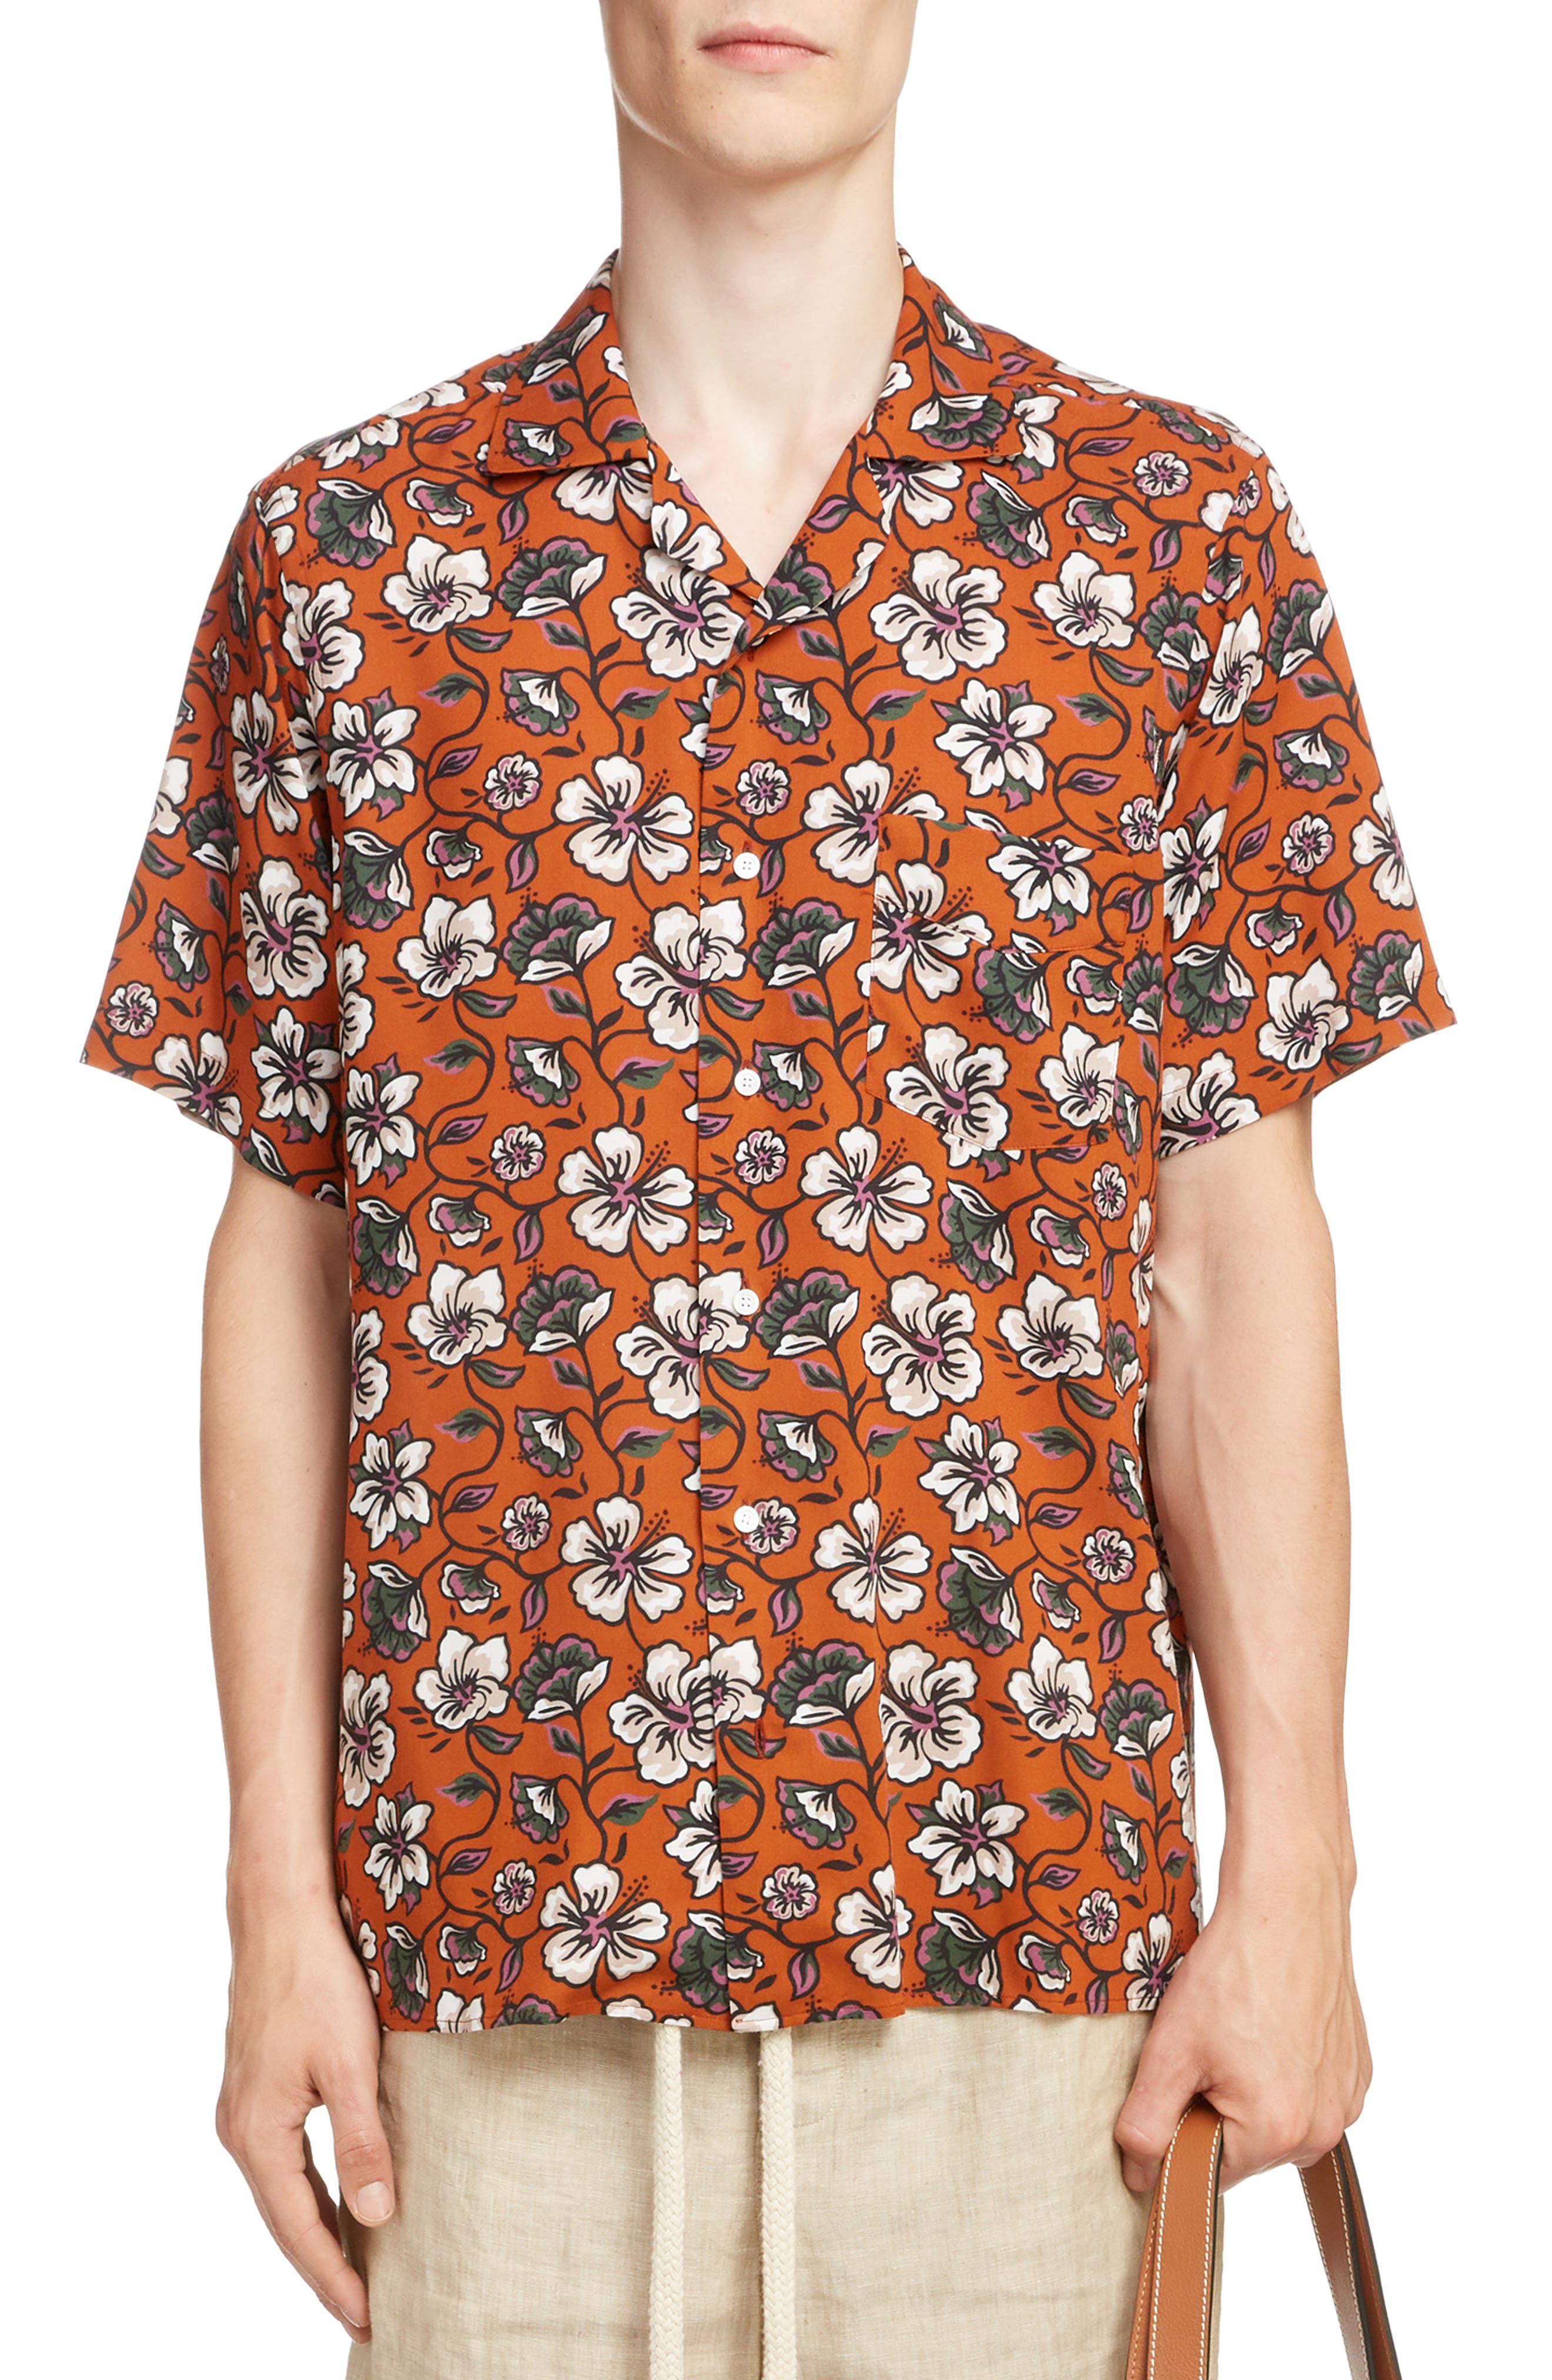 LOEWE, Floral Print Camp Shirt, Main thumbnail 1, color, 2103-WHITE/ BROWN